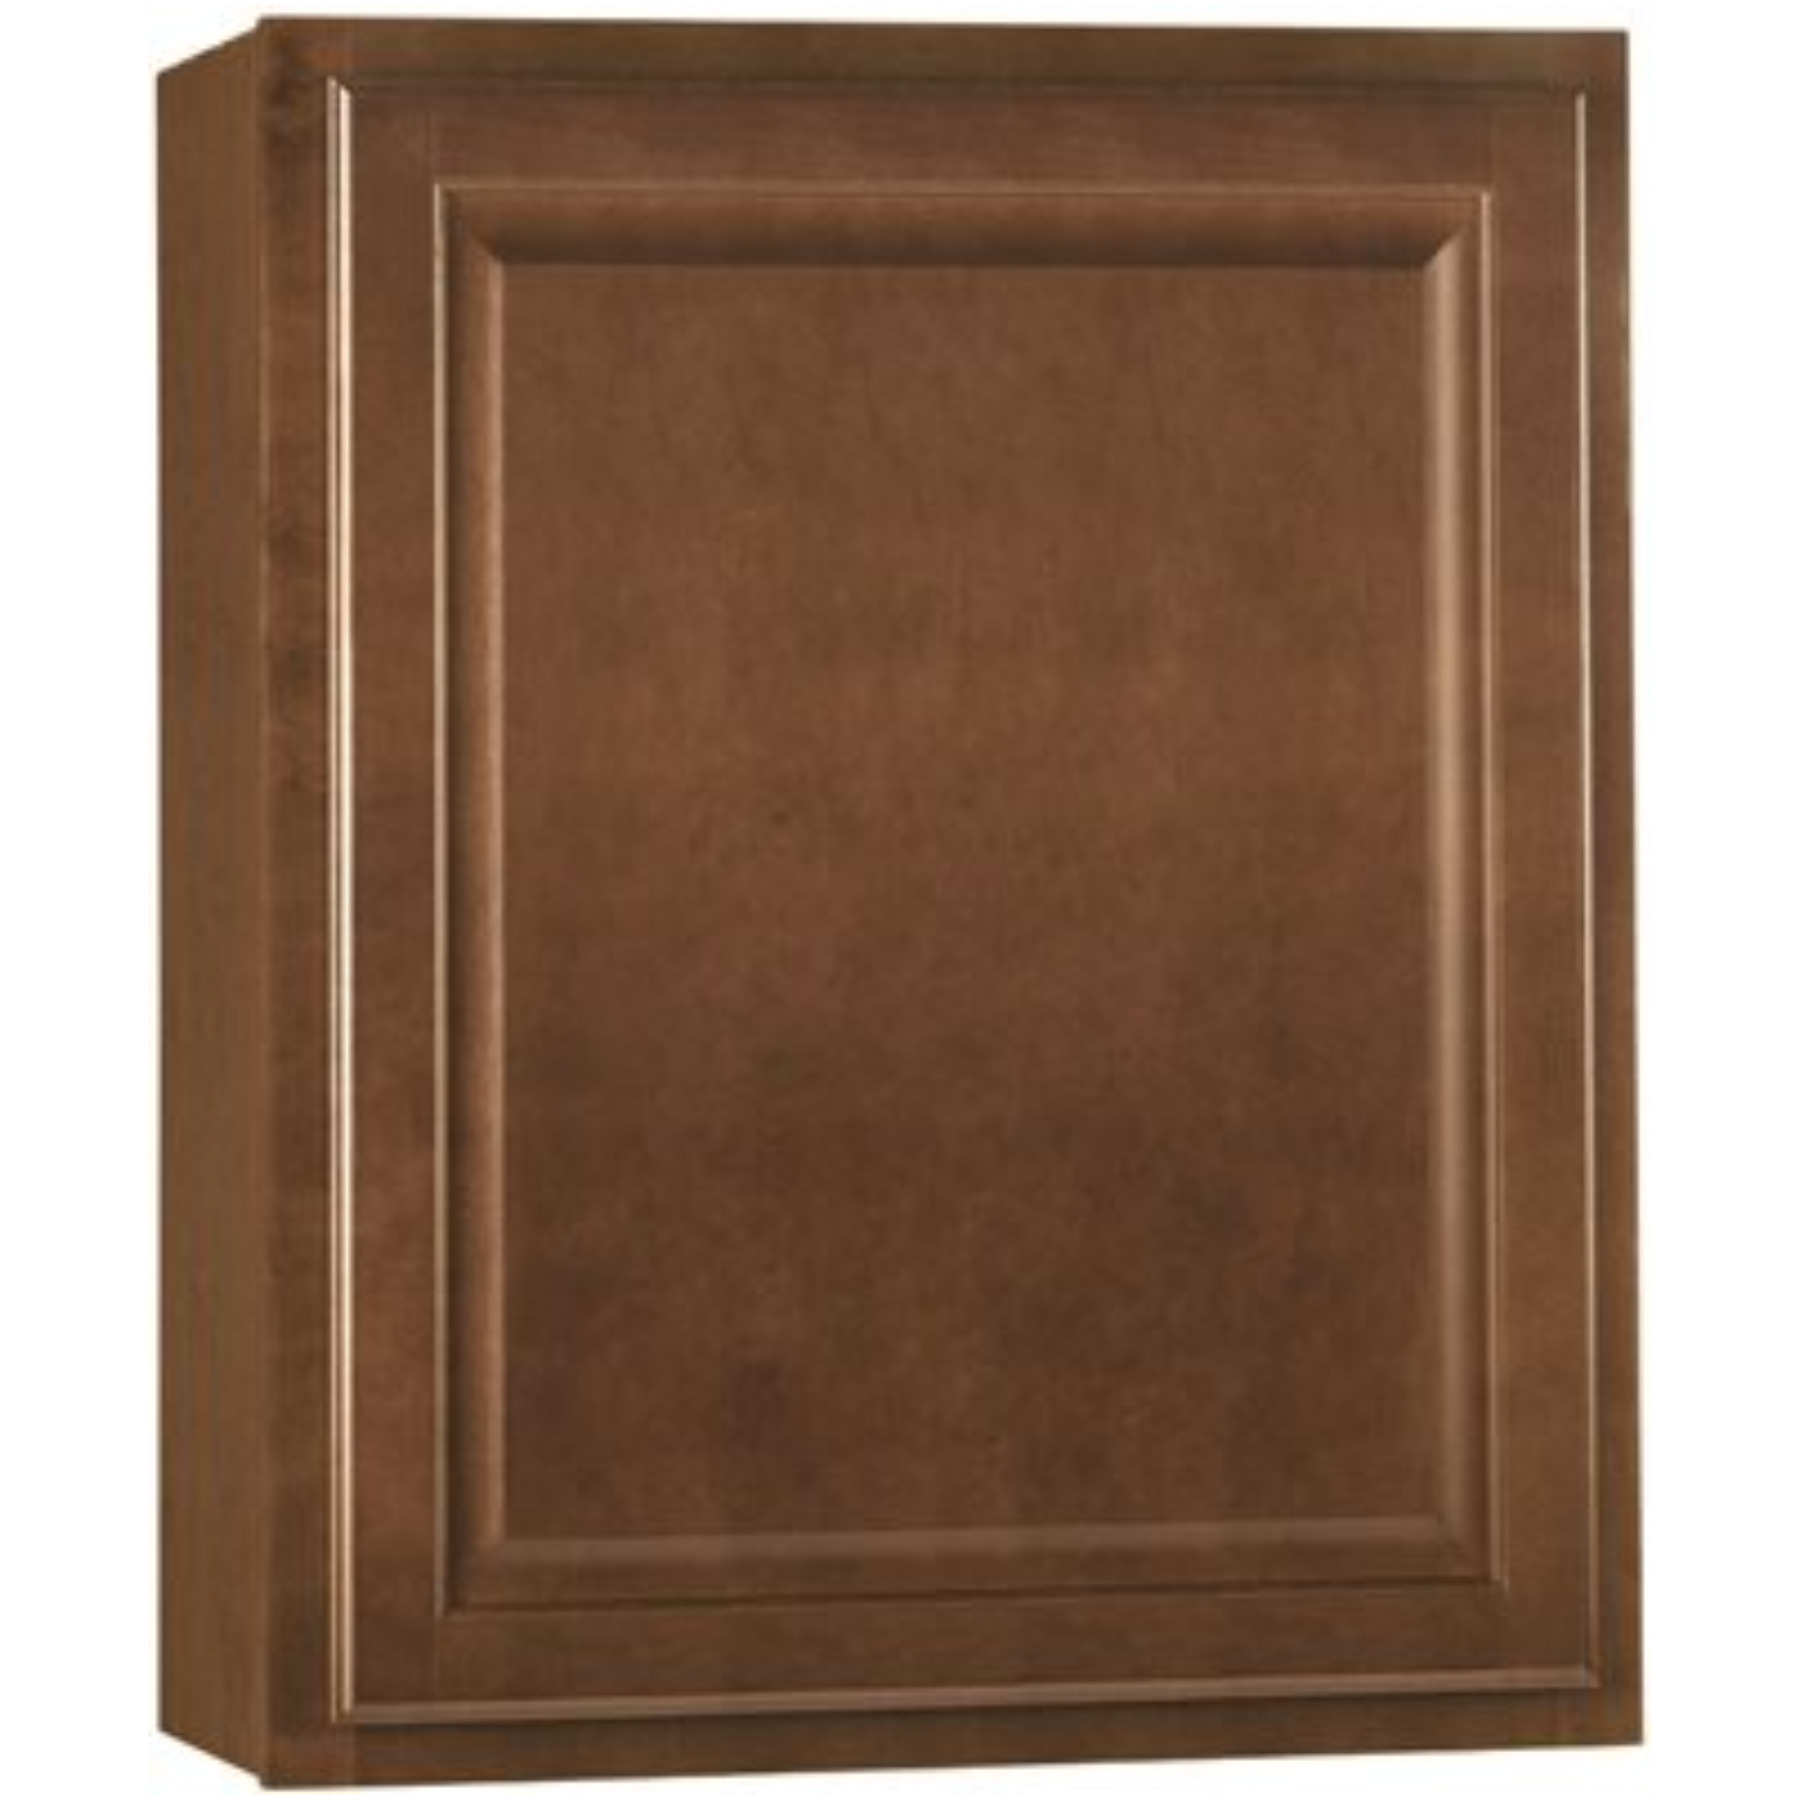 RSI HOME PRODUCTS HAMILTON KITCHEN WALL CABINET, FULLY ASSEMBLED, RAISED PANEL, CAFE, 27X30X12 IN.